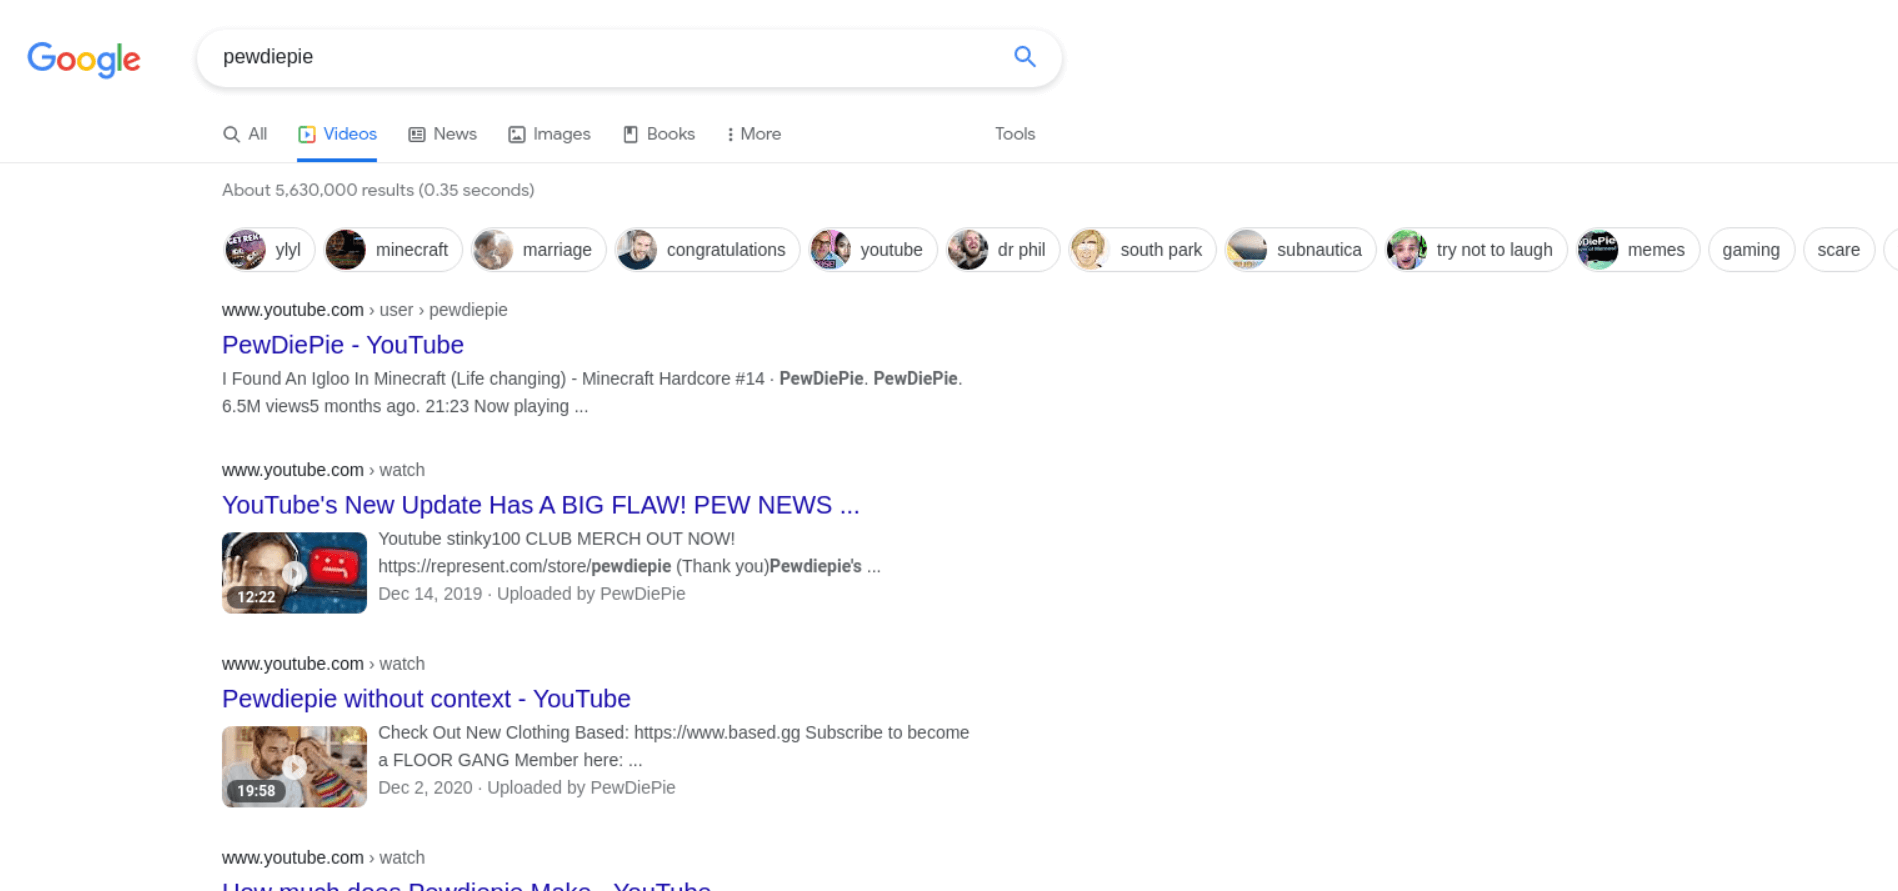 Video Results example